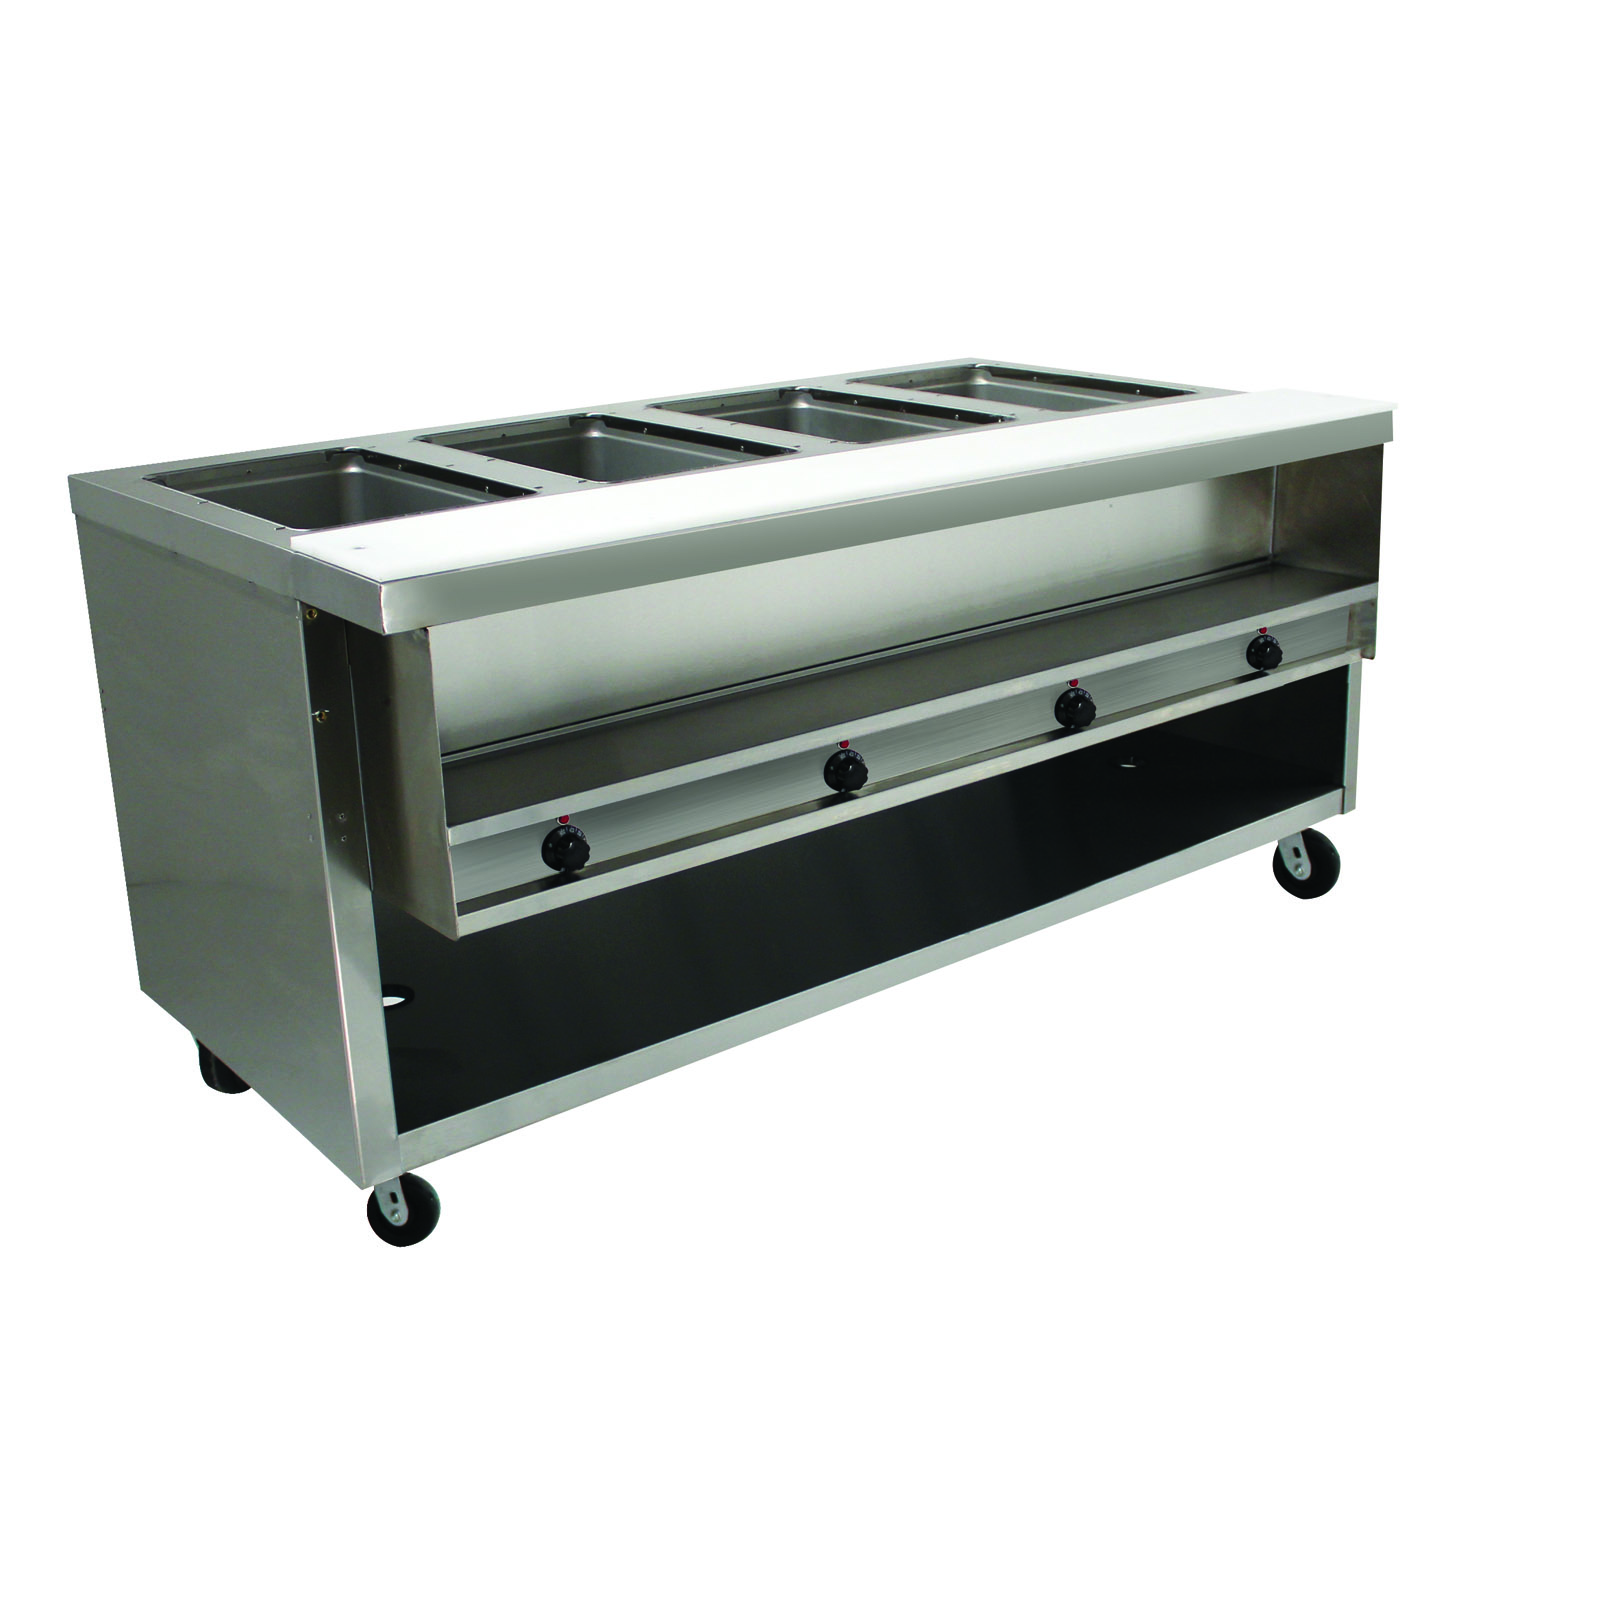 Advance Tabco HDSW-4-120-BS serving counter, hot food, electric